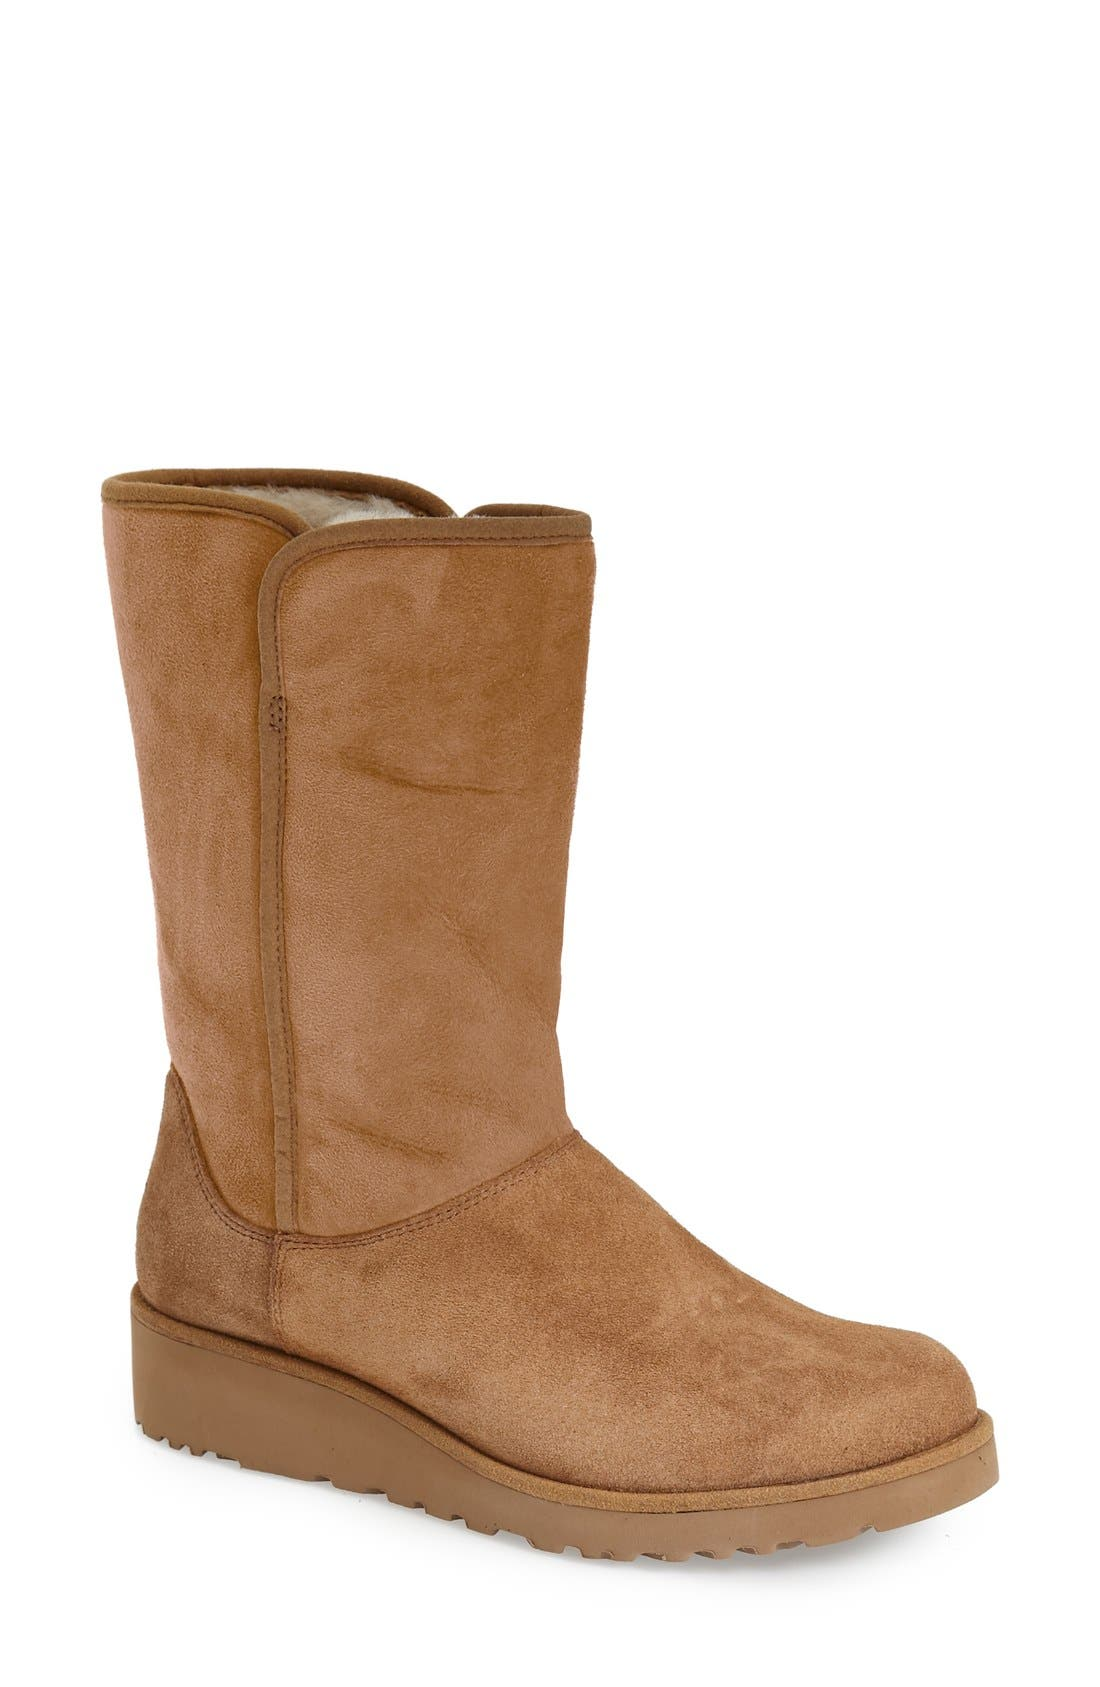 Image of UGG Amie Classic Slim(TM) Genuine Searling Lined Short Boot